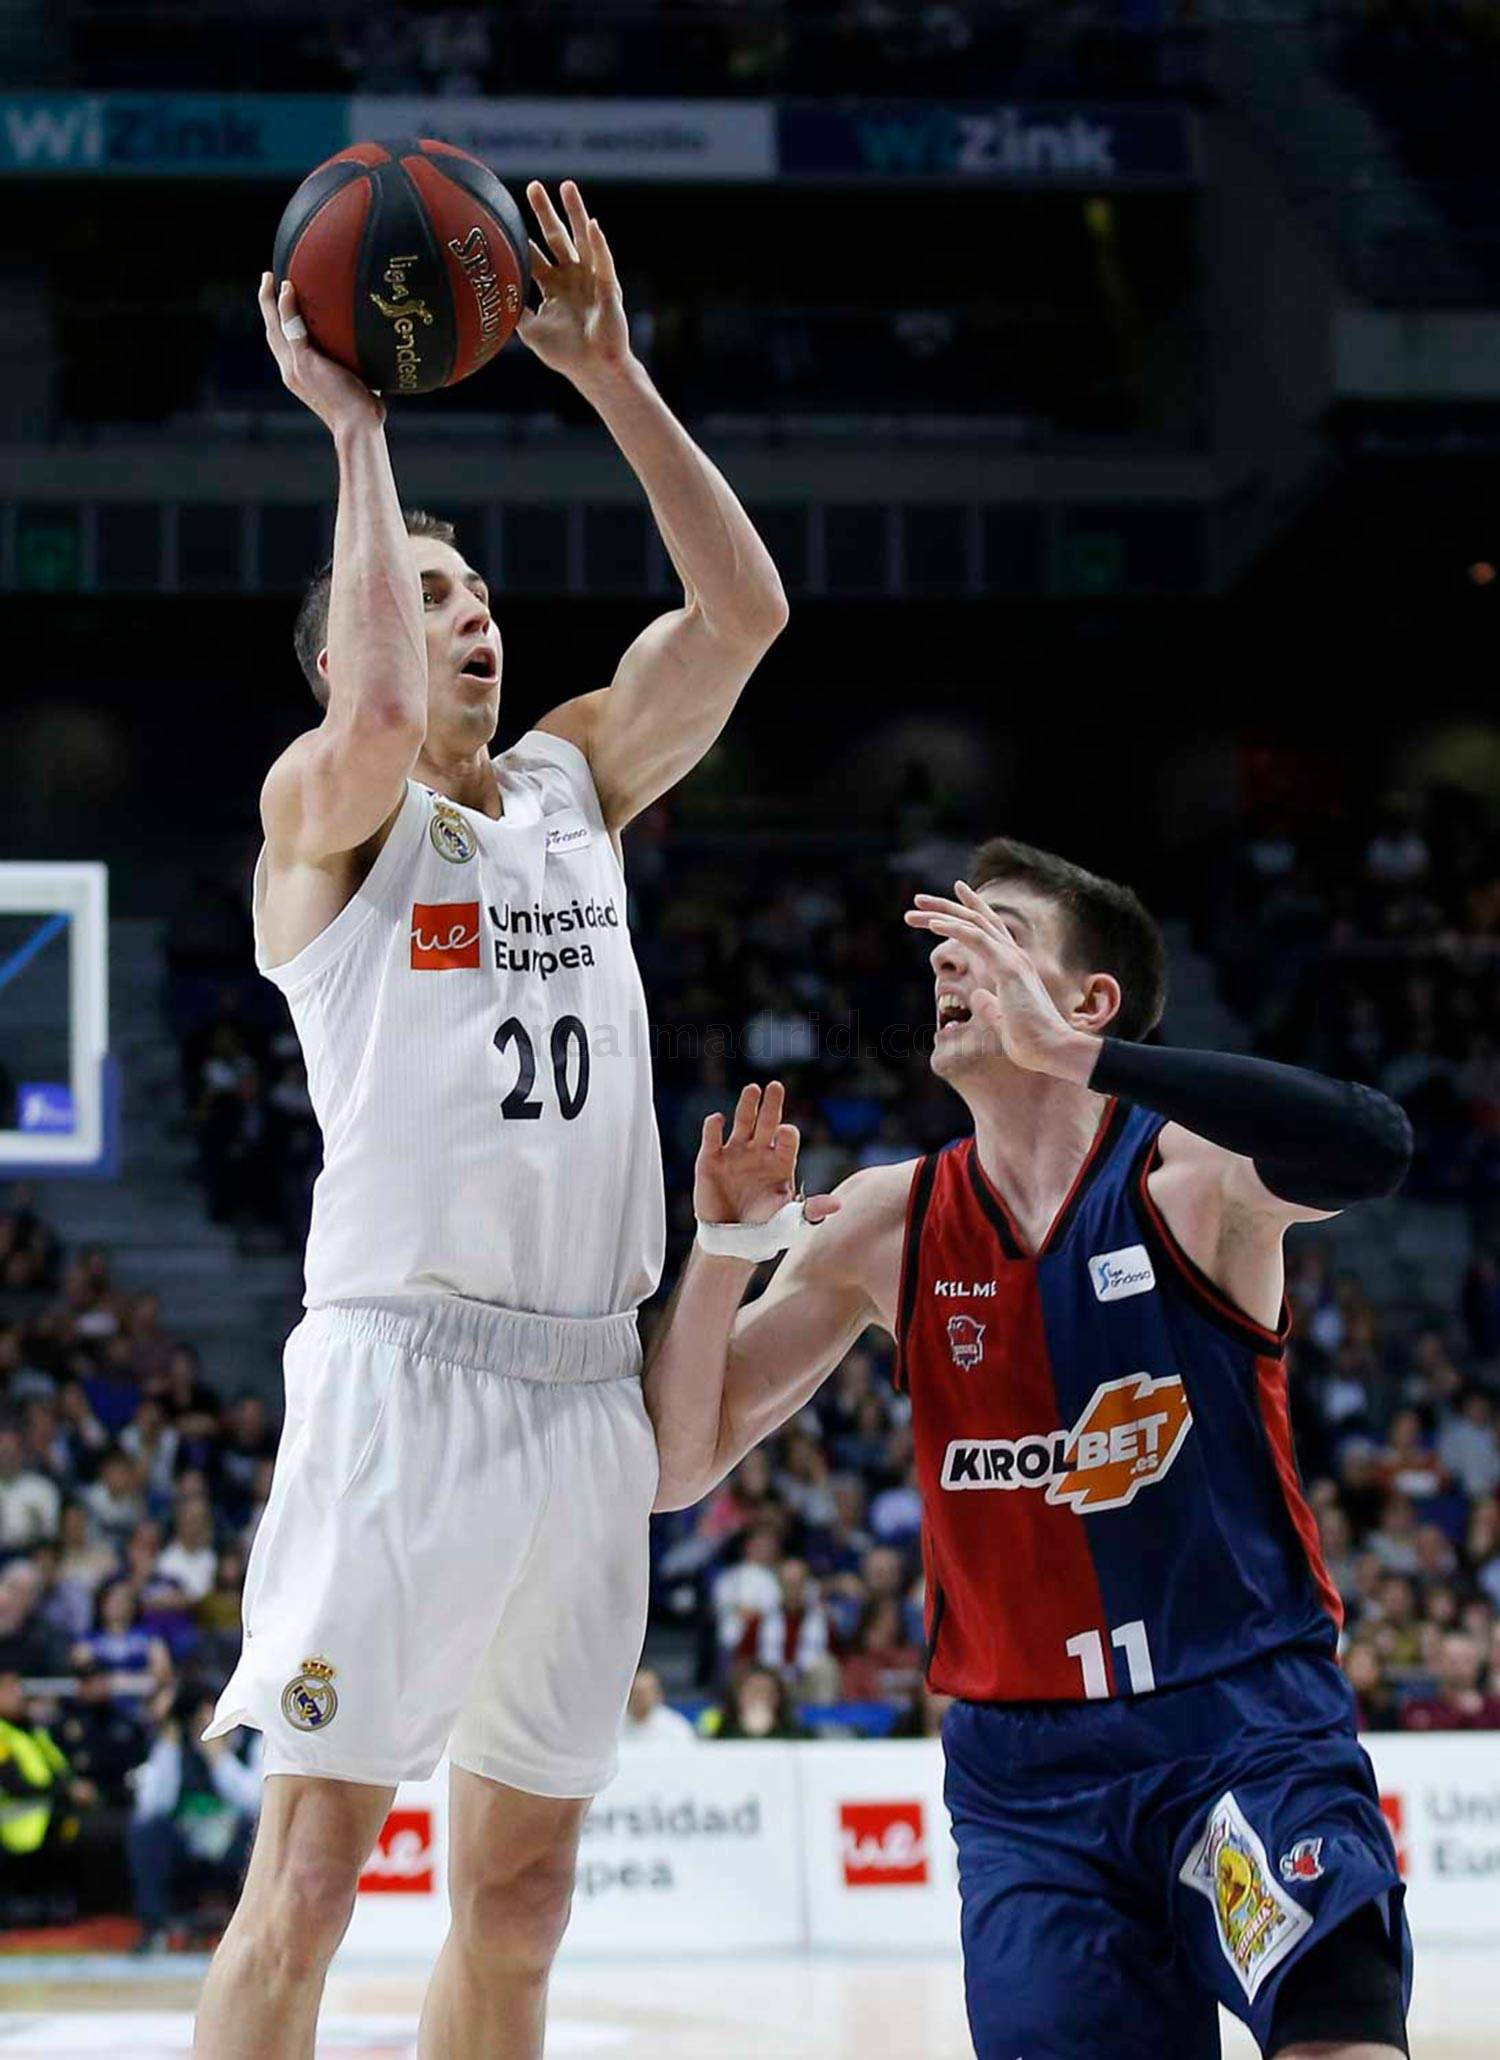 Real Madrid - Real Madrid - Kirolbet Baskonia - 11-02-2019